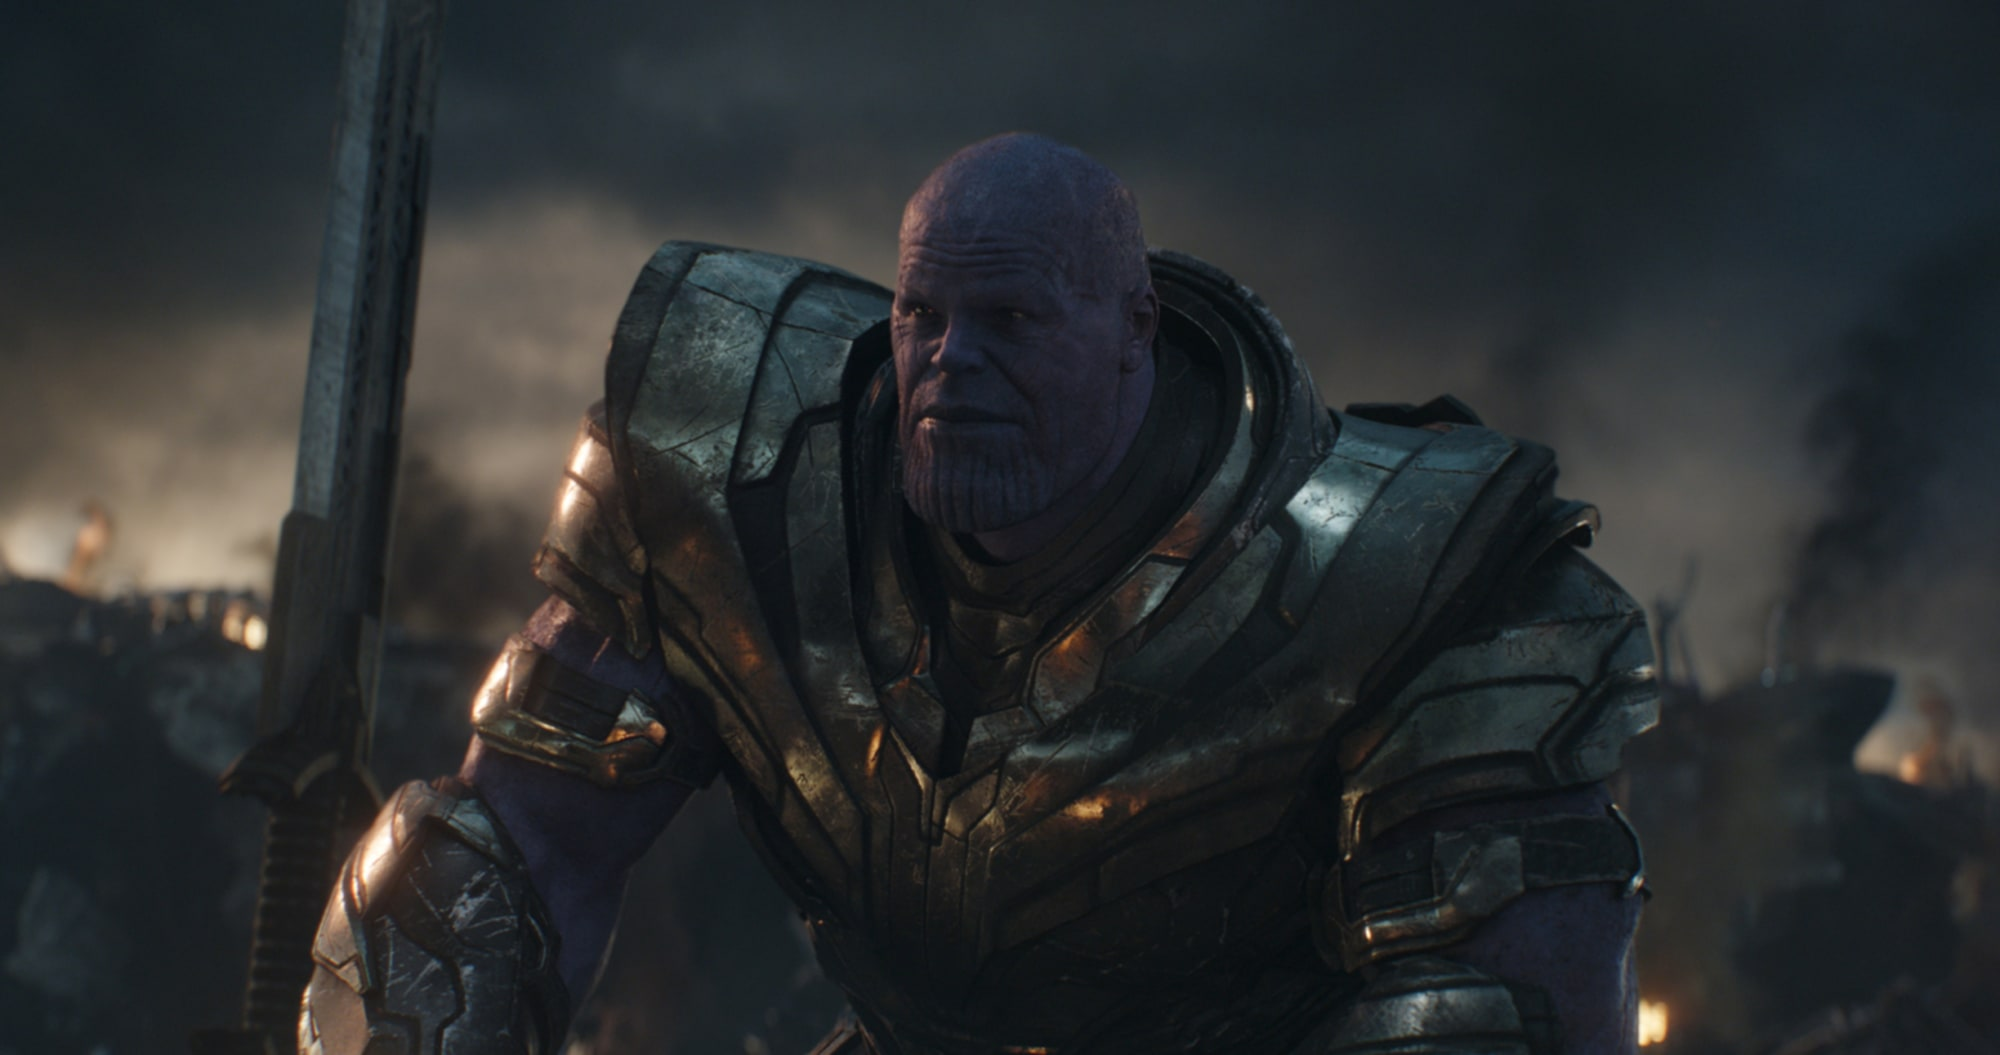 Fortnite Thanos Face Adam Warlock And Thanos May Never Face Off In The Mcu